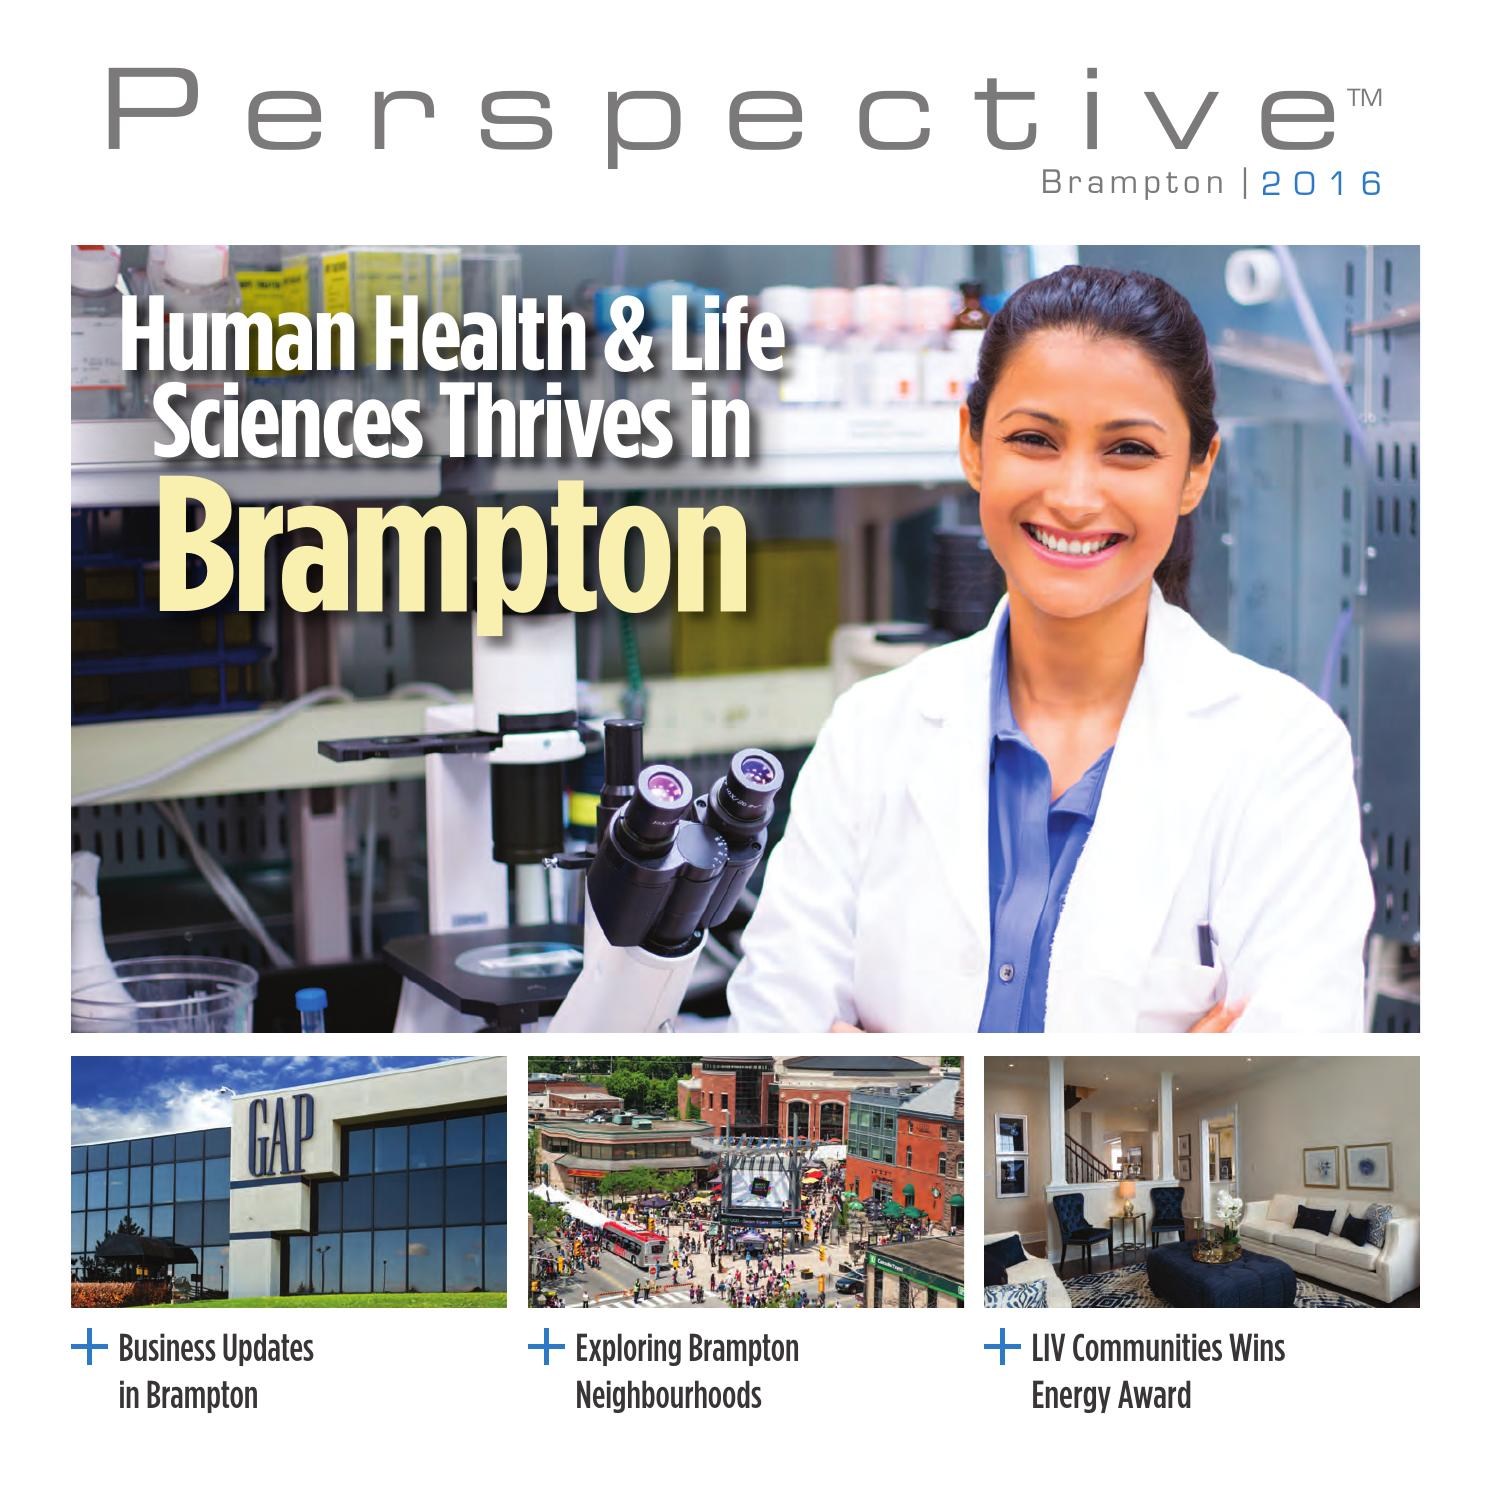 Perspective Brampton 2016 by Perspective - issuu